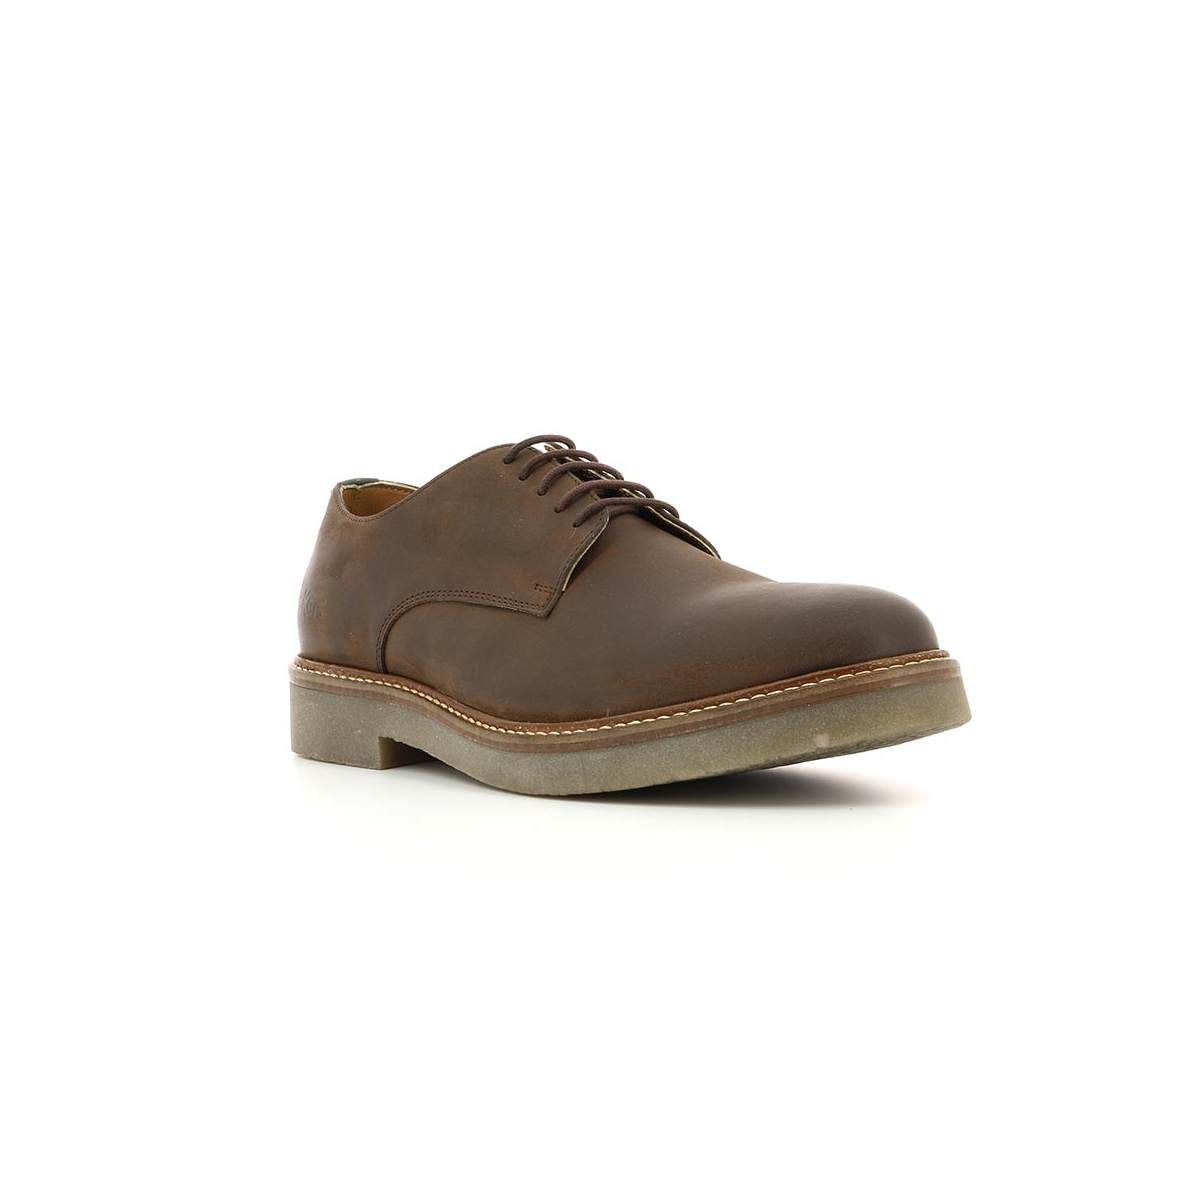 Oxfork Qwy0pzg Marron Kickers Homme Chaussures qxw0ZvC